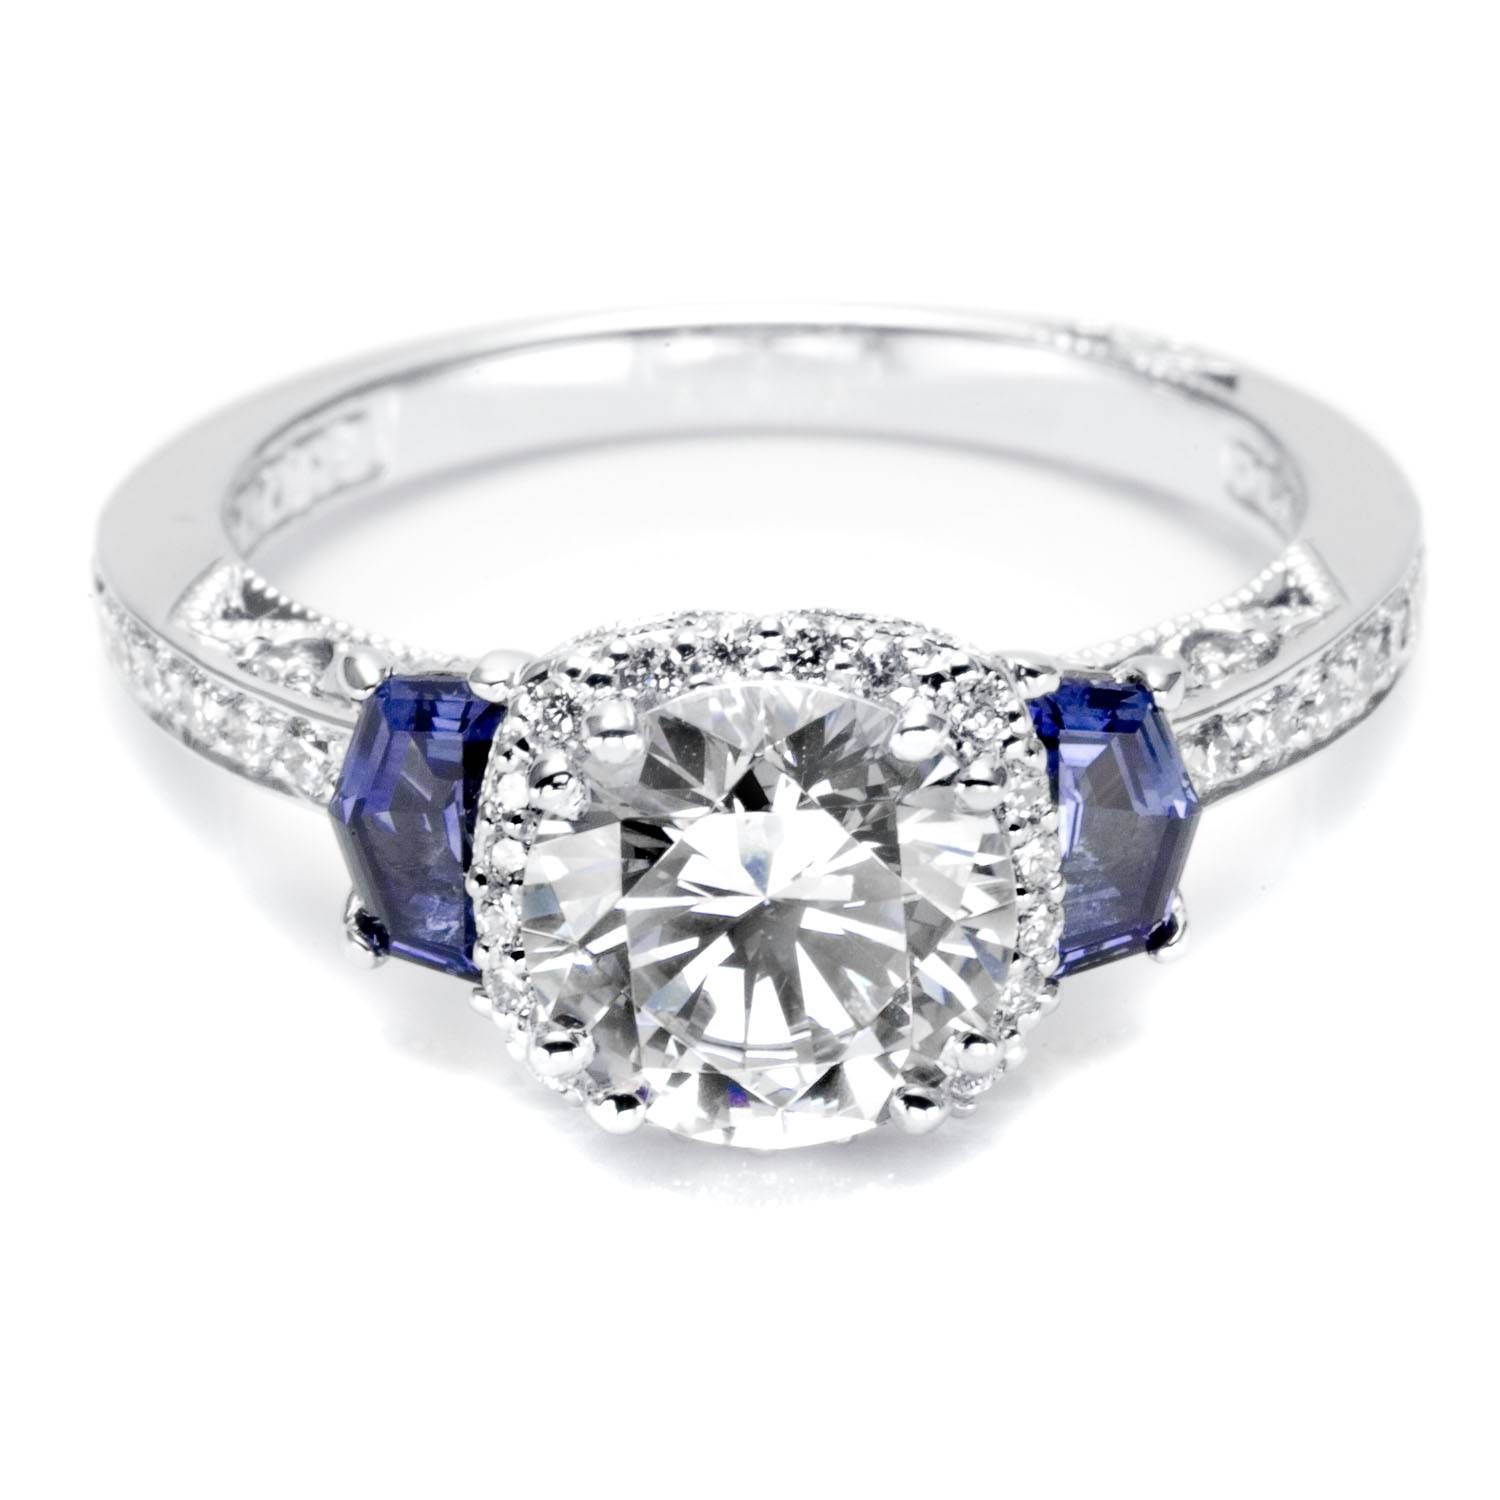 Engagement Rings : Holts Rings Diamond Engagement Rings With With Engagement Rings With Sapphire (View 6 of 15)